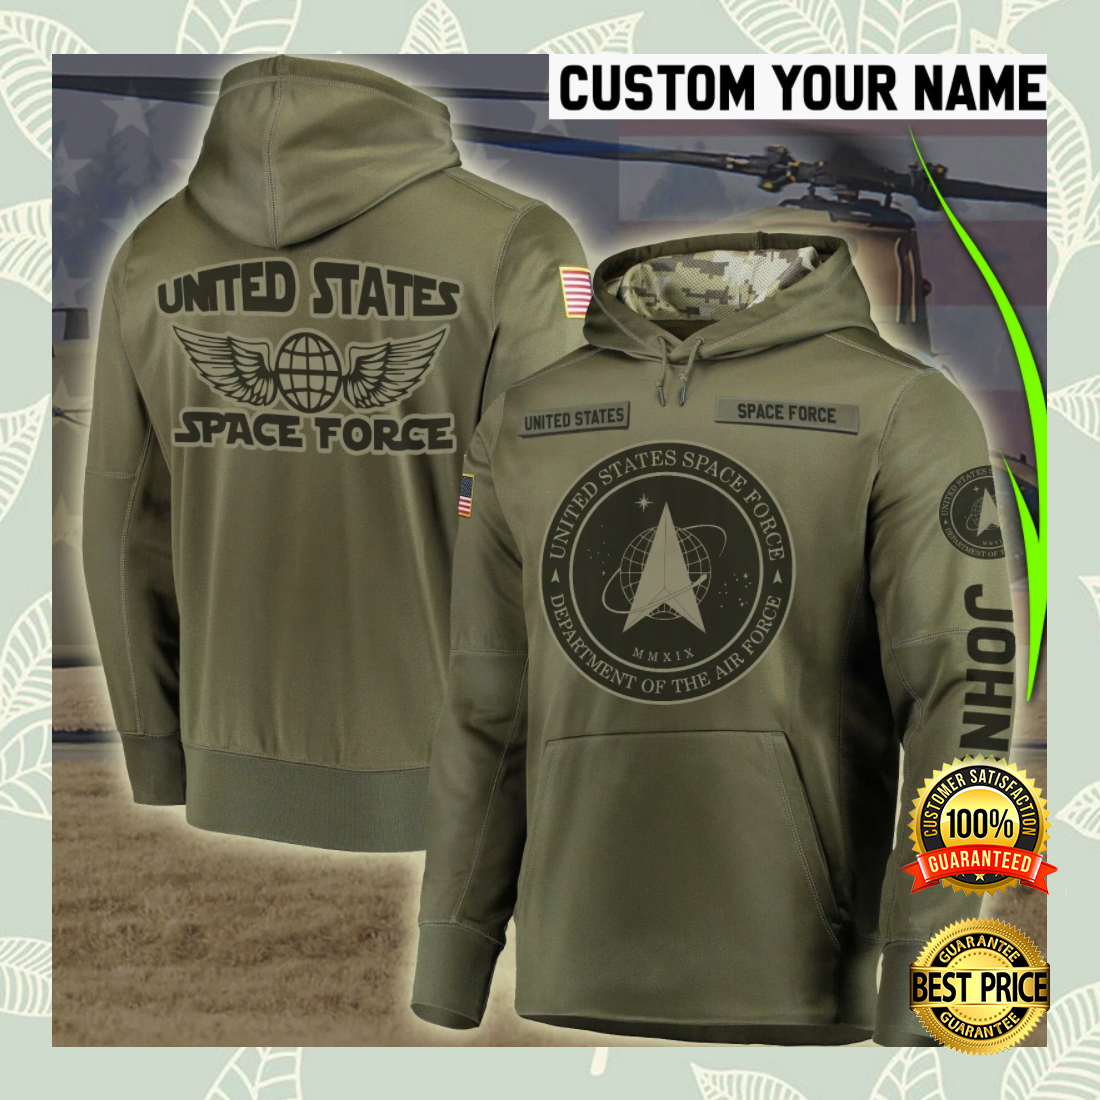 PERSONALIZED US SPACE FORCE ALL OVER PRINTED 3D HOODIE 5